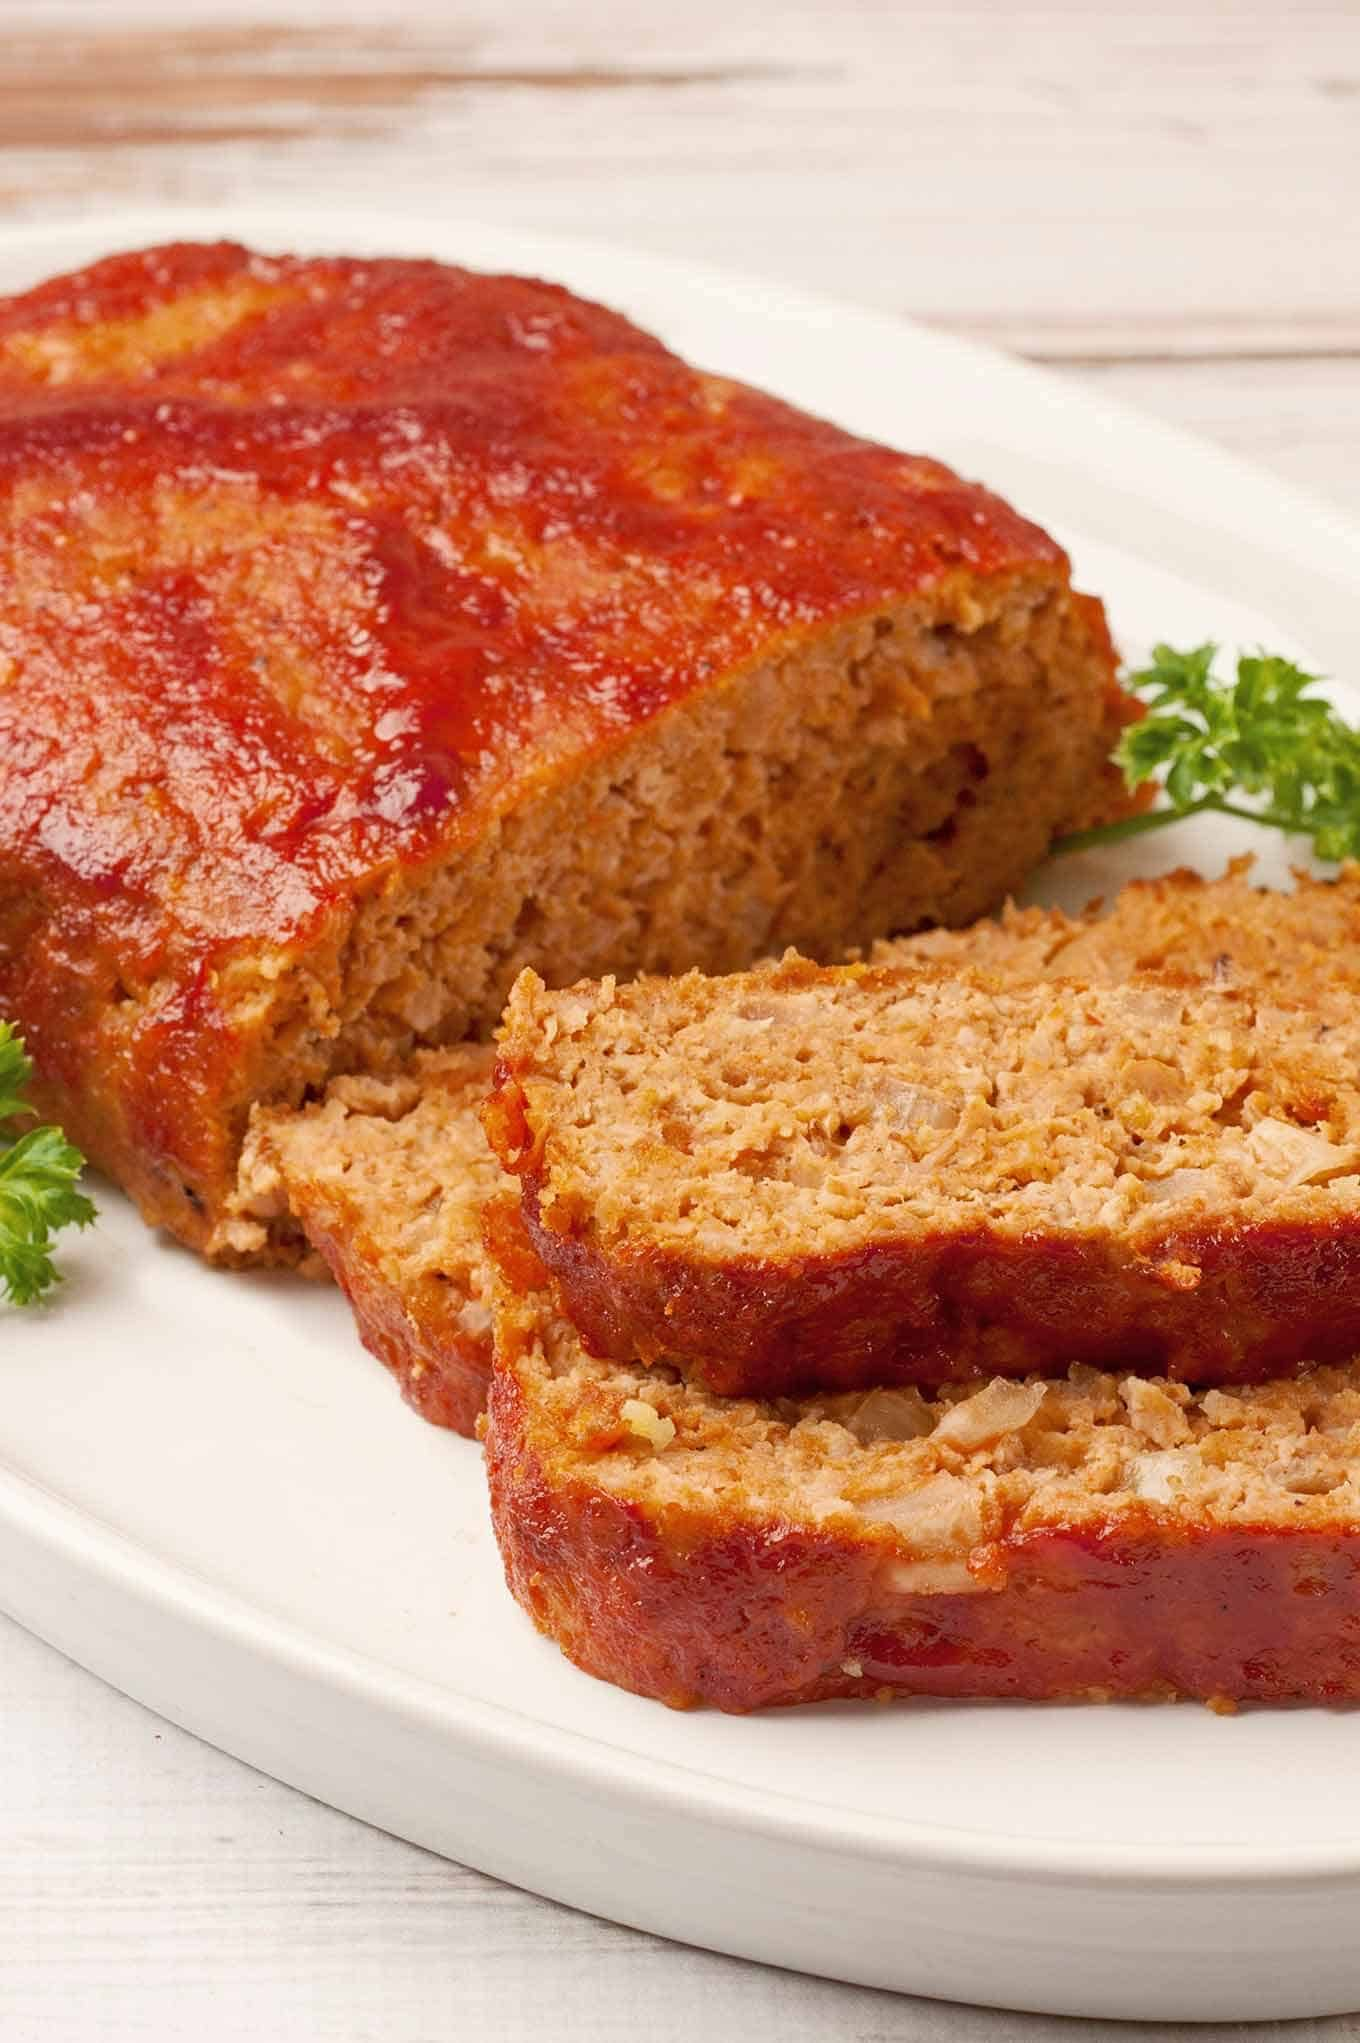 Barbecue Chicken Meatloaf Recipe In 2021 Turkey Meatloaf Turkey Meatloaf Recipes Ground Turkey Meatloaf